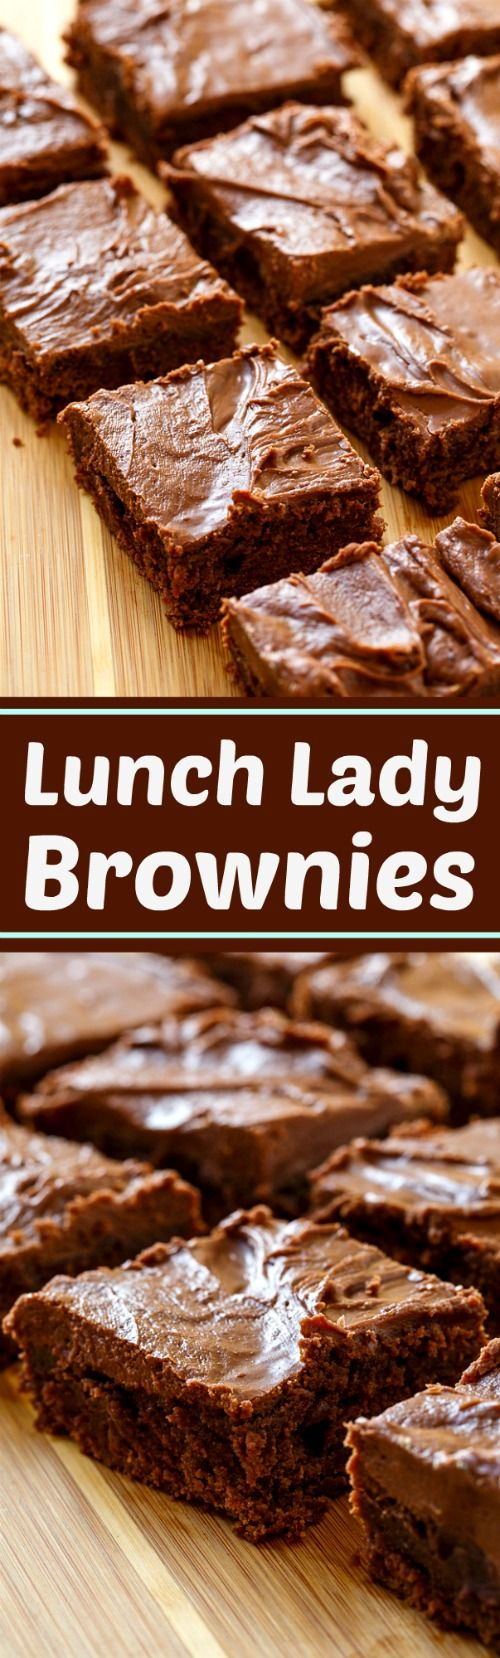 Lunch Lady Brownies- the most delicious brownies ever!